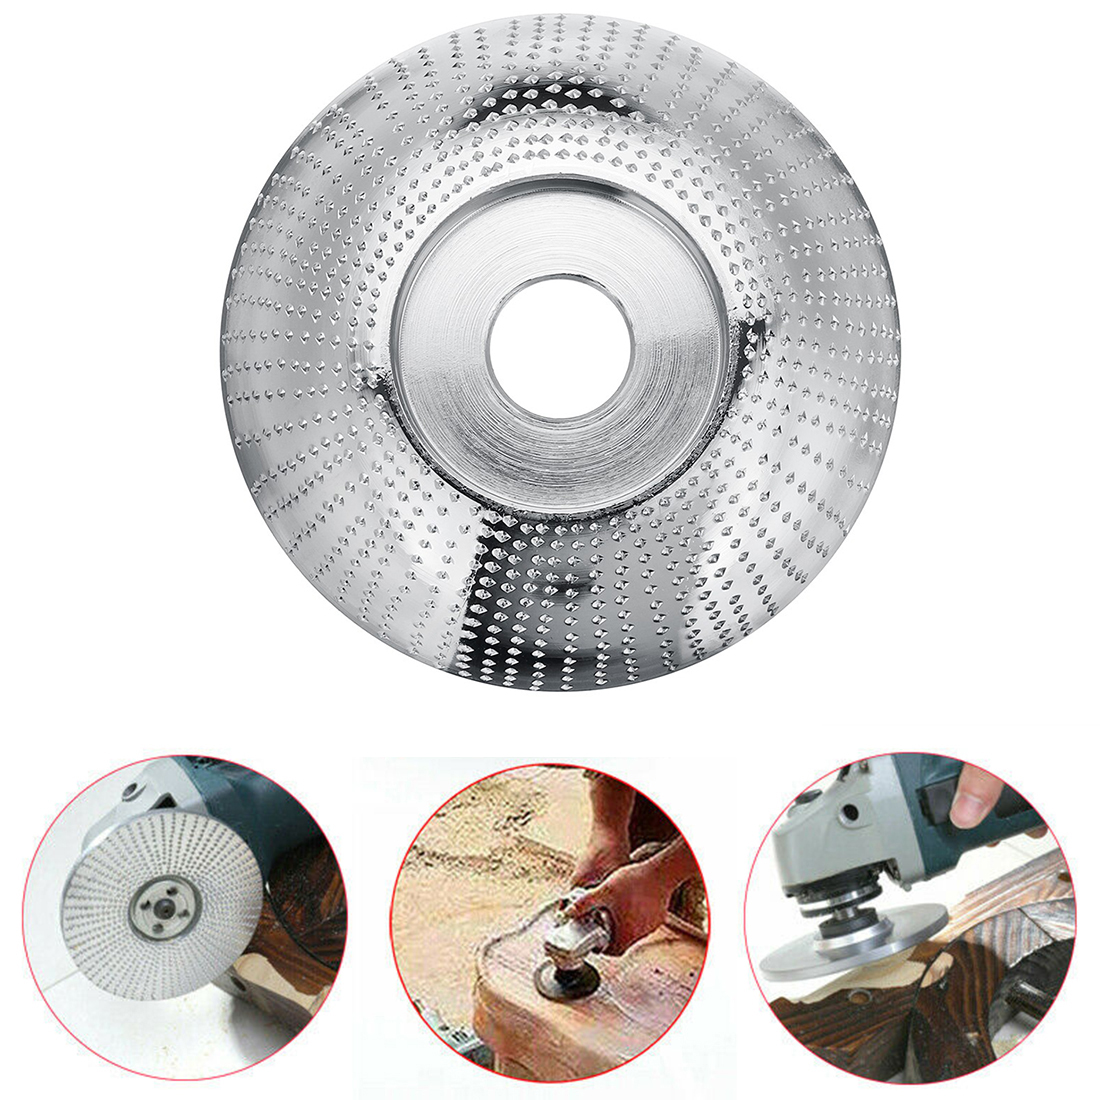 85*22mm High Quality Wood Grinding Wheel Rotary Shaping Disc Sanding Wood Carving Tool Abrasive Disc Tools For Angle Grinder